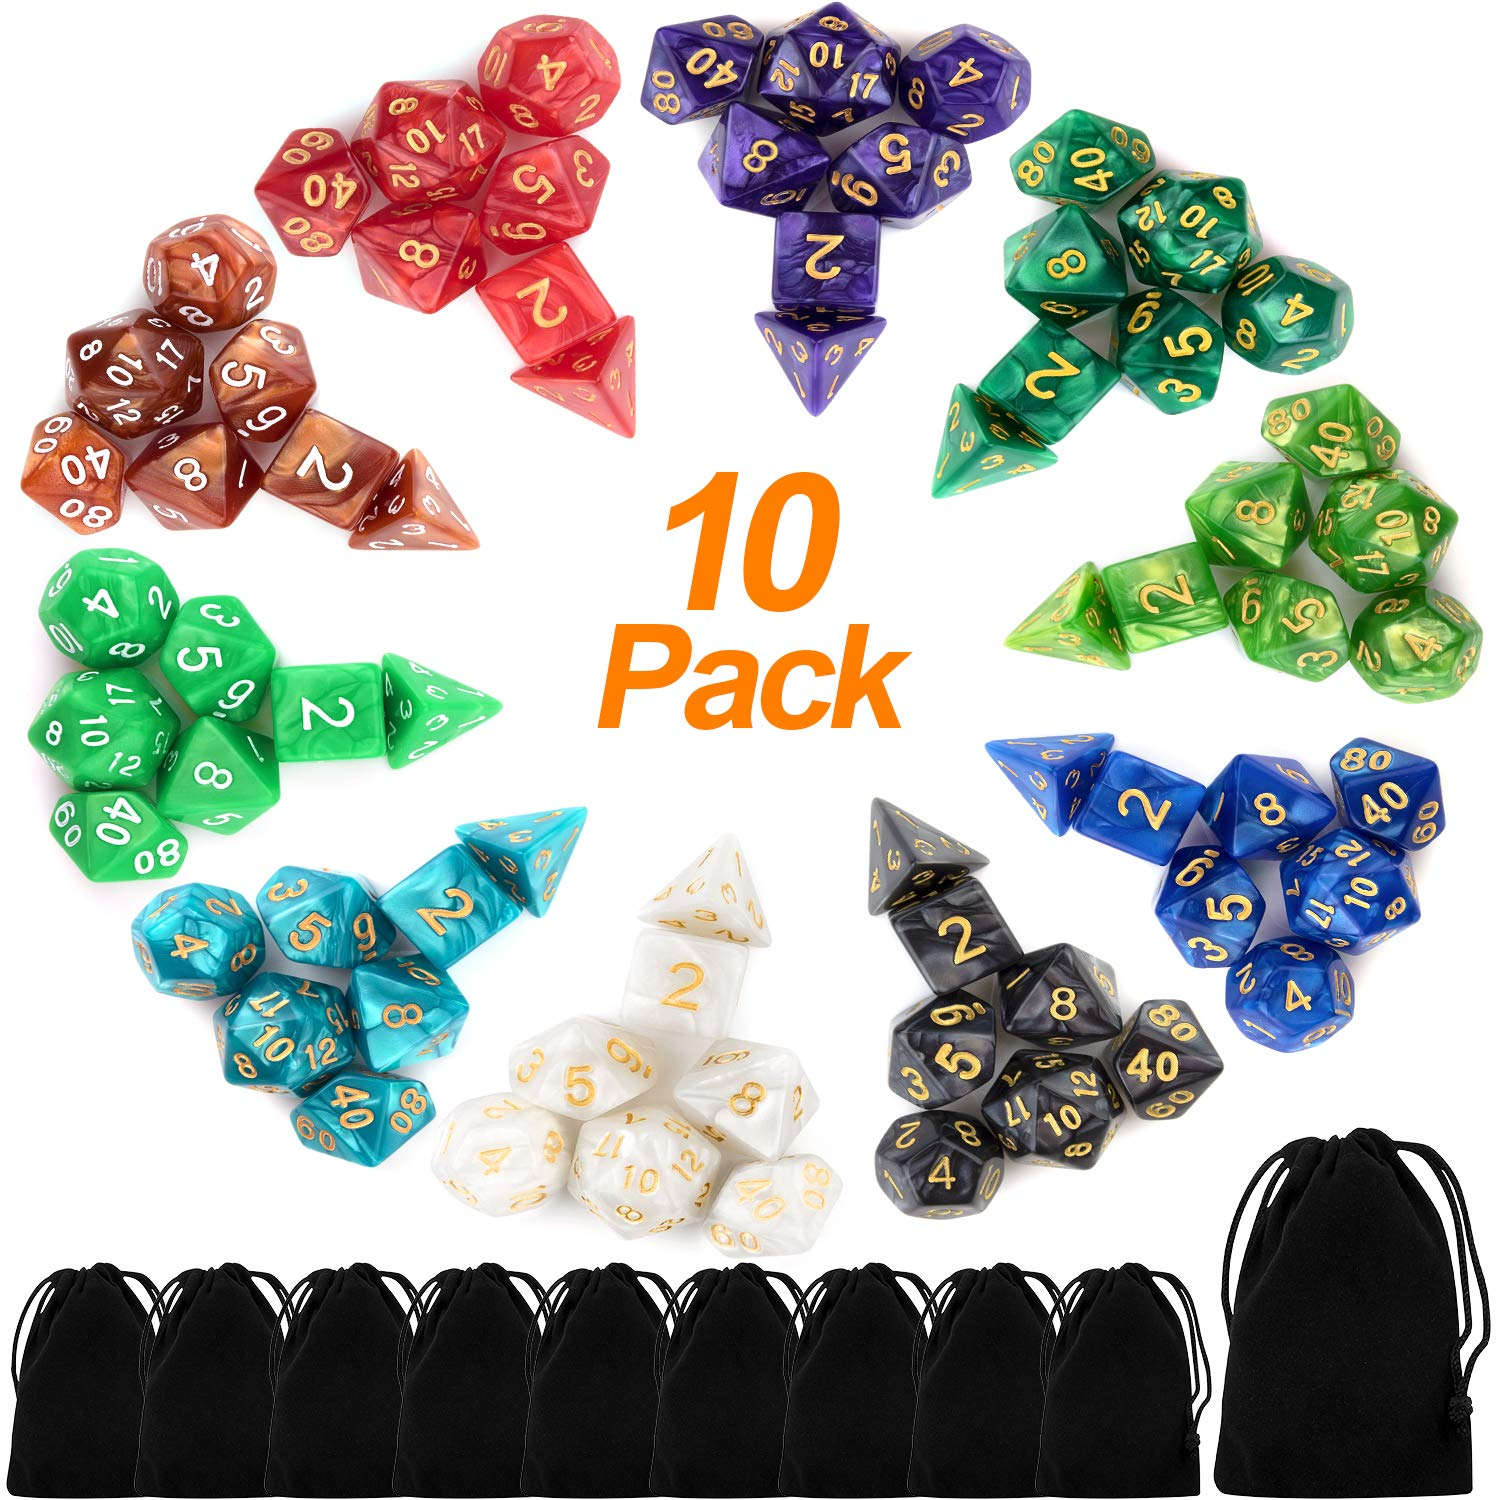 10 X 7 Polyhedral Dice Set (70 Pieces) for Dungeons and Dragons DND RPG MTG Table Games D4 D6 D8 D10 D% D12 D20 with 10 Pack Black Bags, 10 Colors by Awpeye